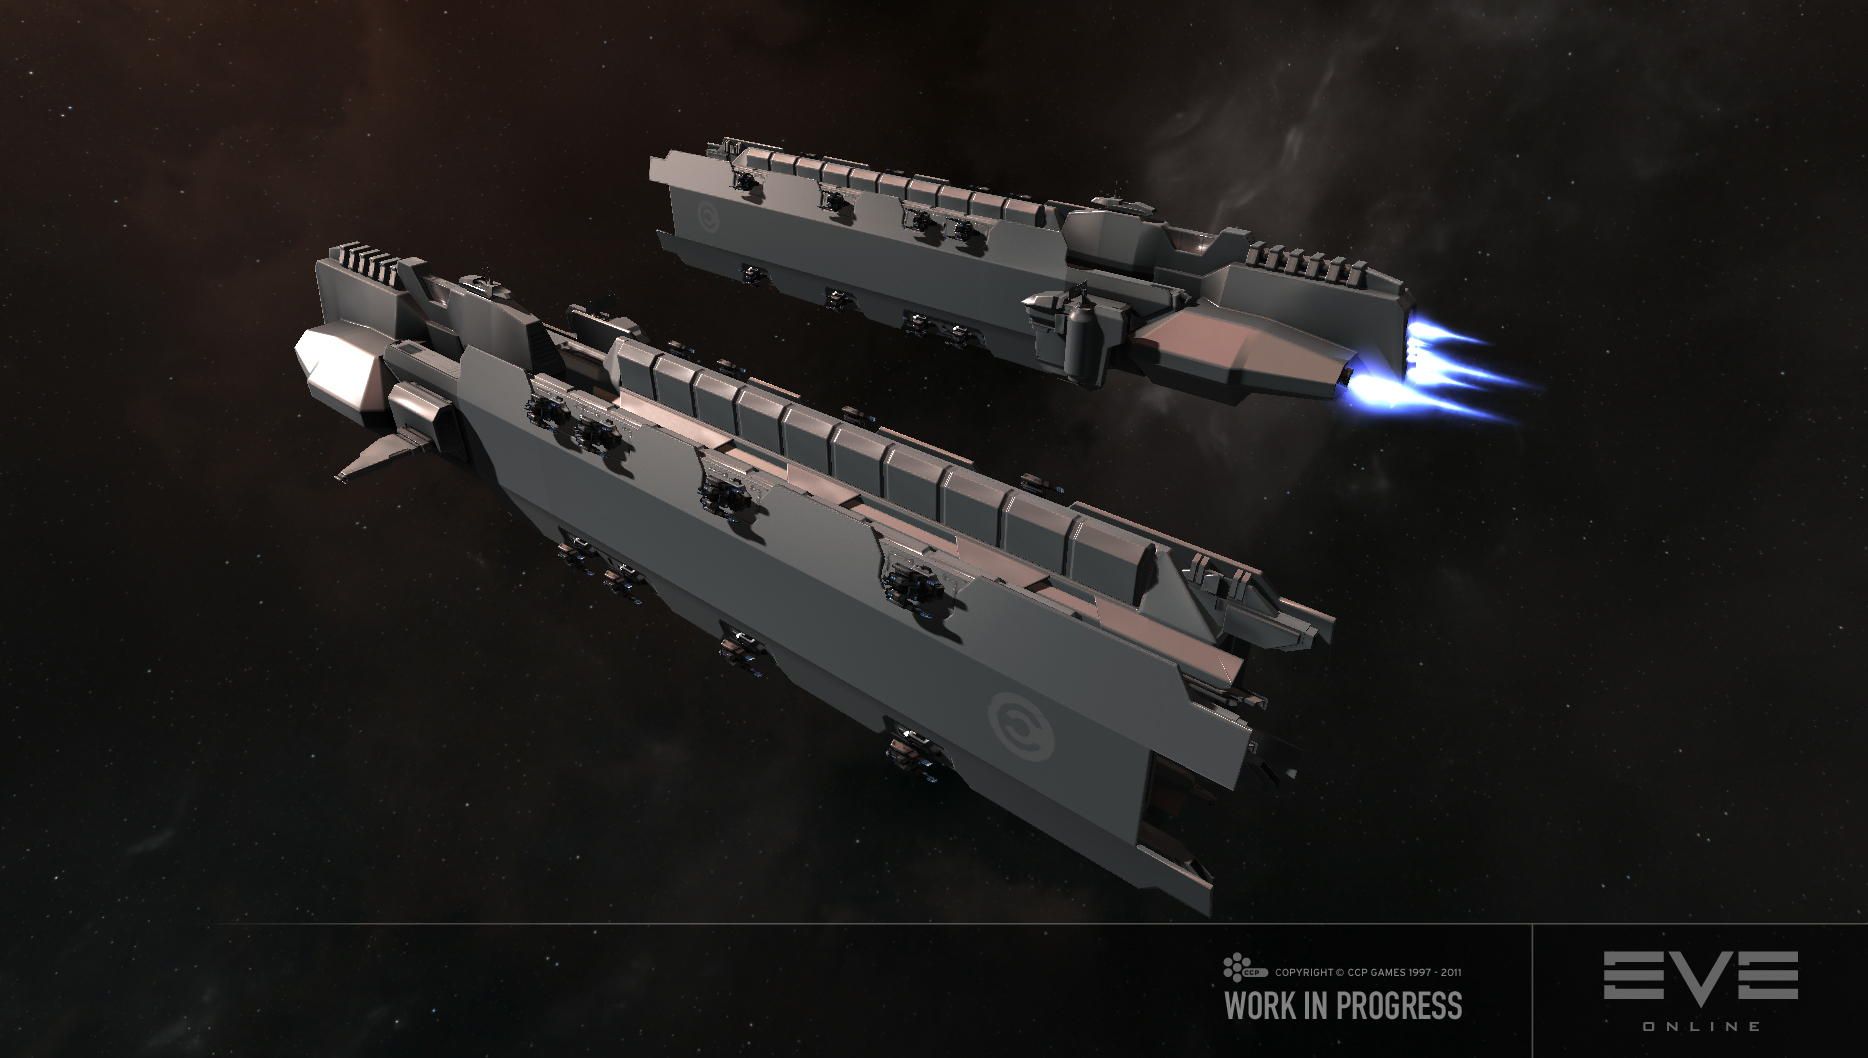 space ship on starmade - photo #37